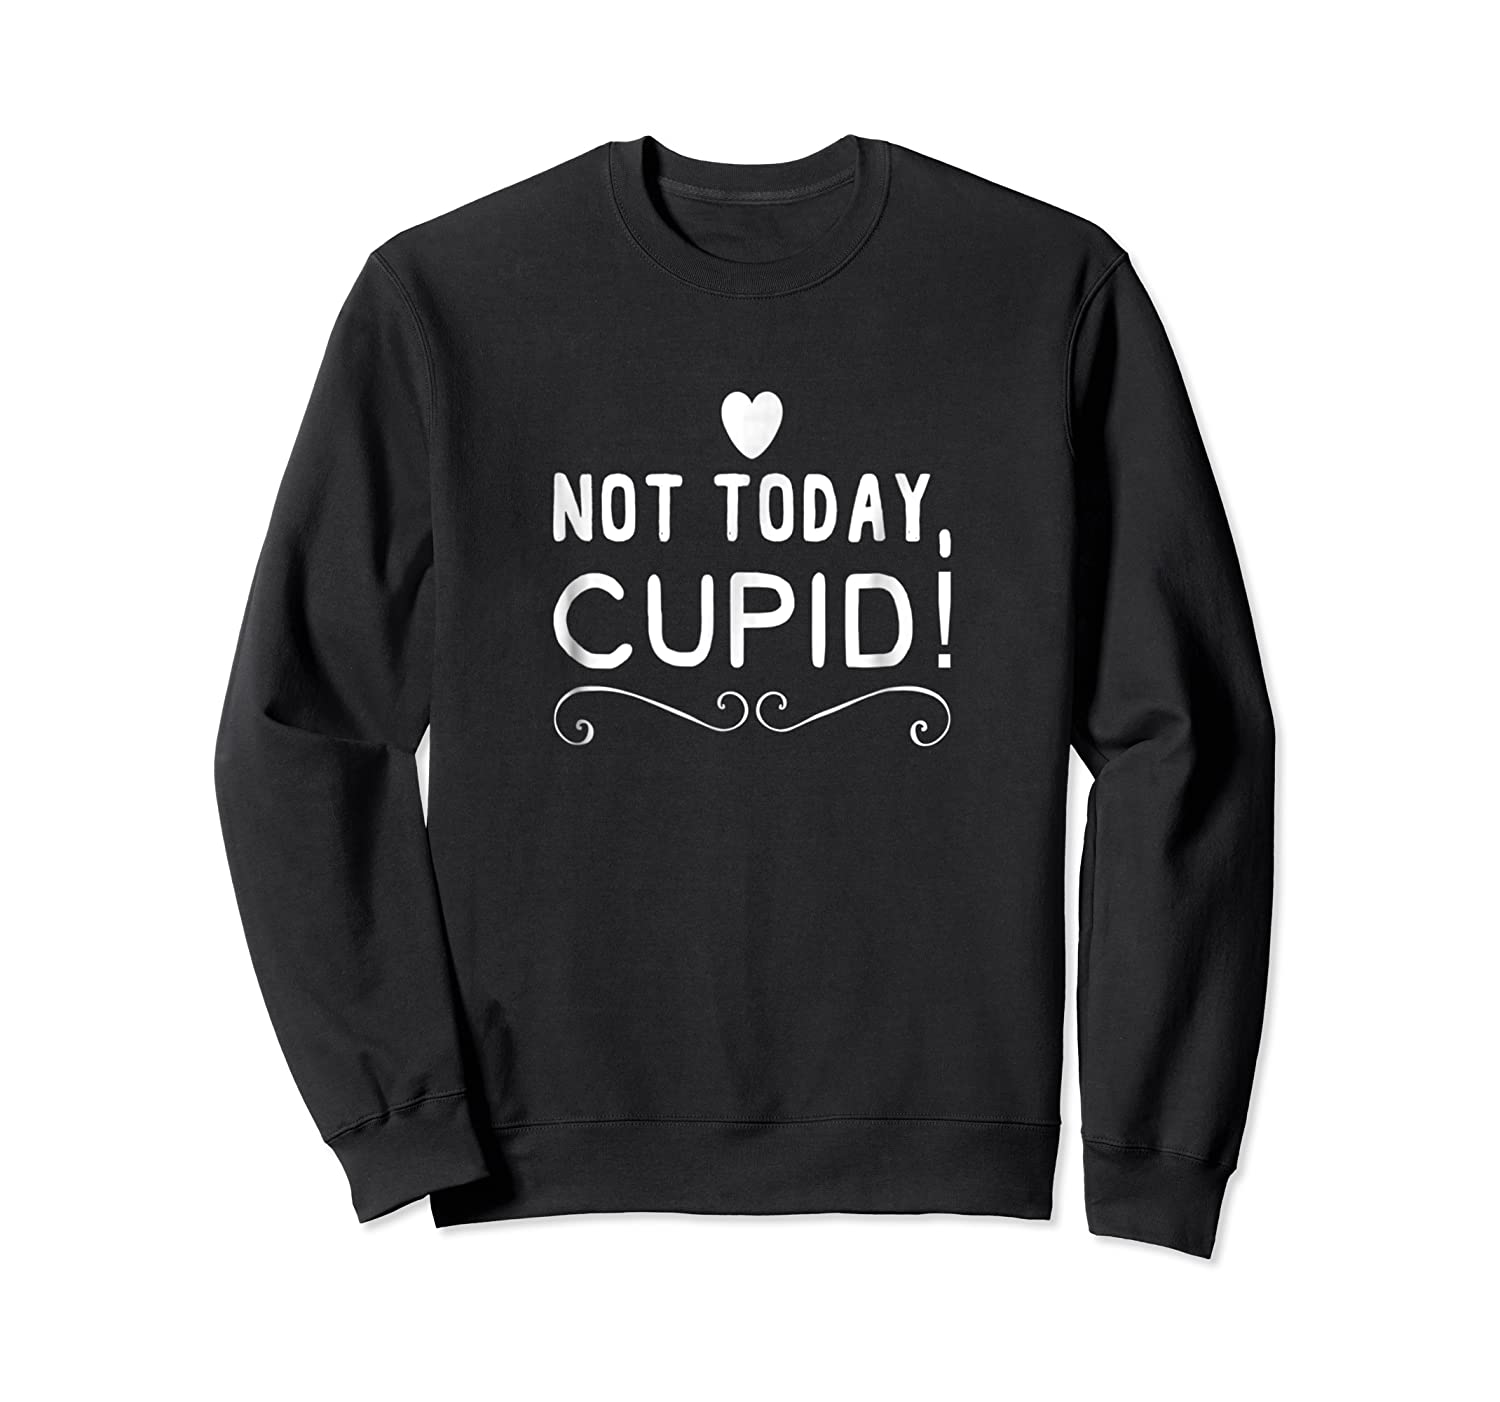 Not Today Cupid Funny Anti Love Tshirt Divorce Single Gift Crewneck Sweater